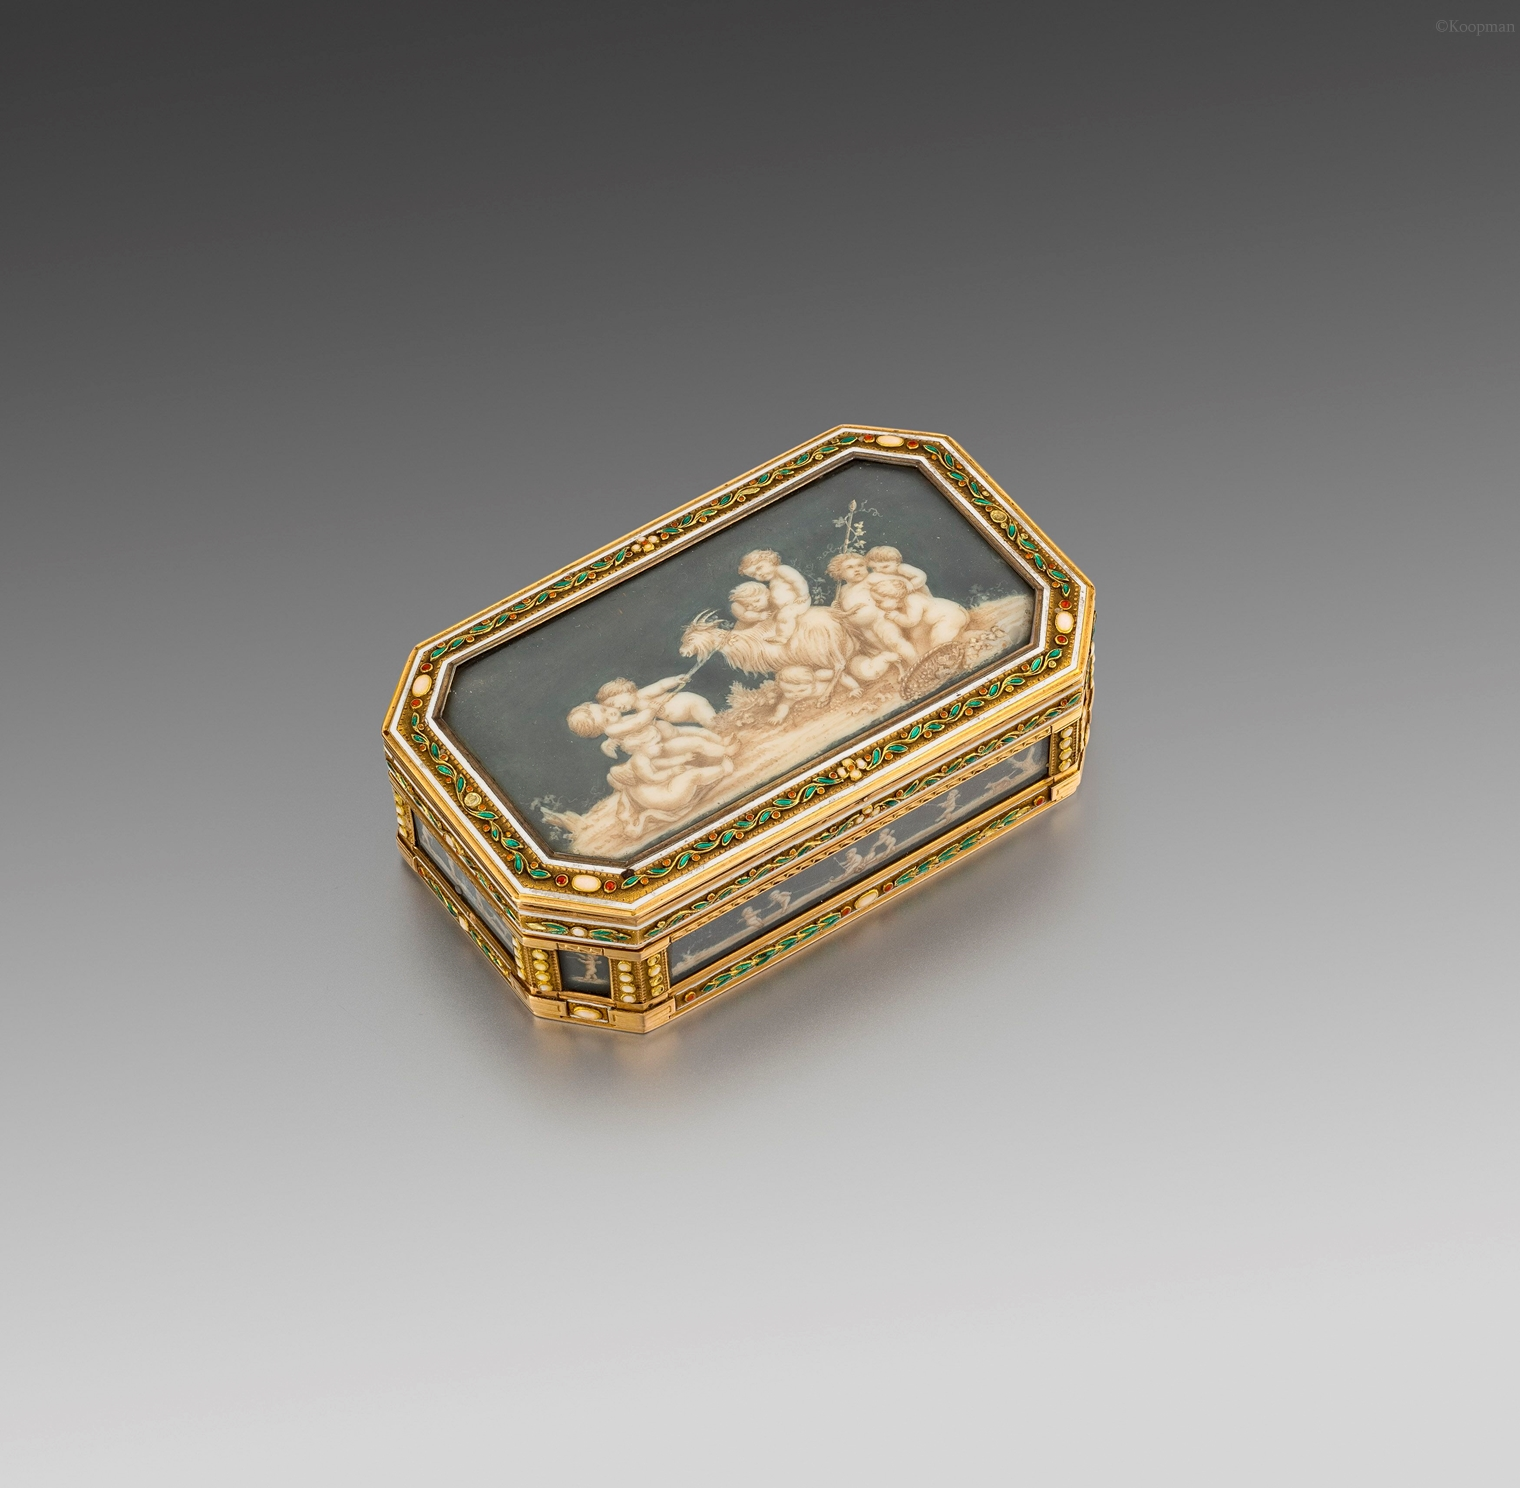 A French Gold, Enamel & Ivory Boîte À Miniatures